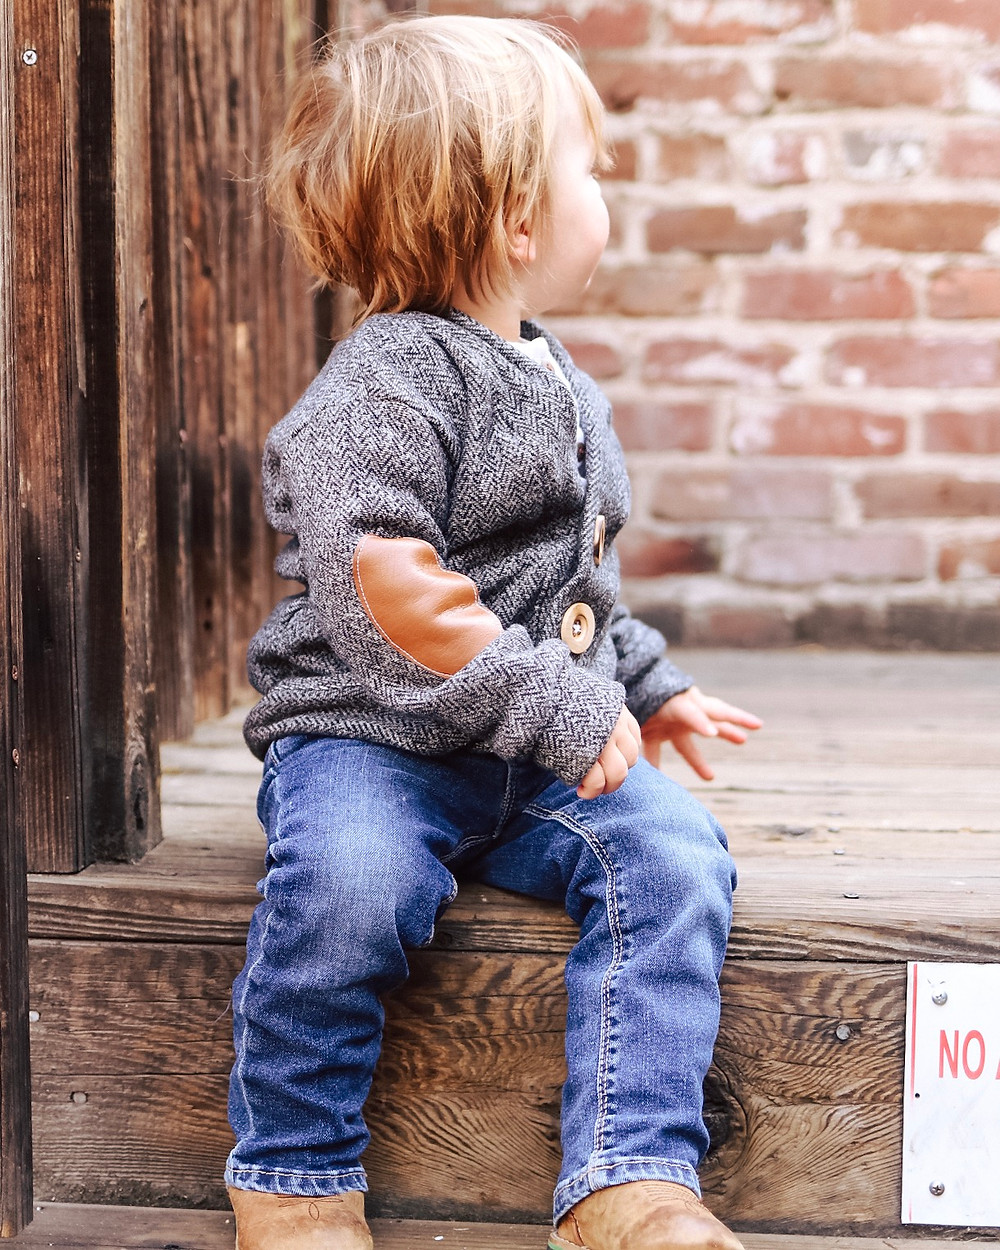 A little boy wearing a sweater with leather elbow patches sitting on a wooden step.